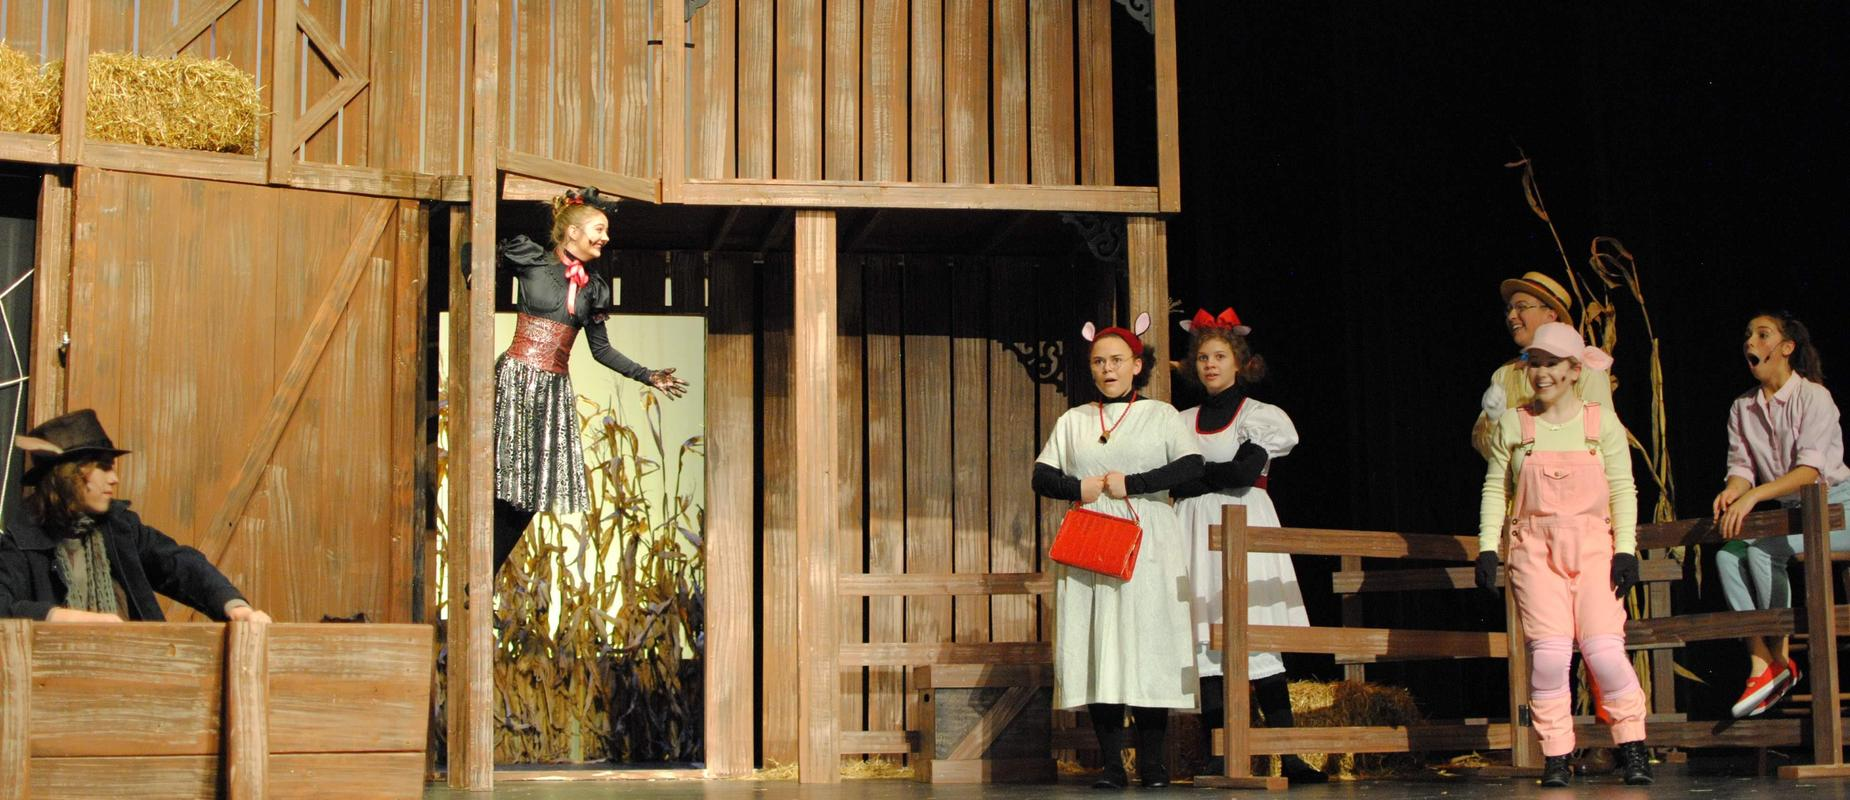 Charlotte's Web cast on stage with fence and barn props